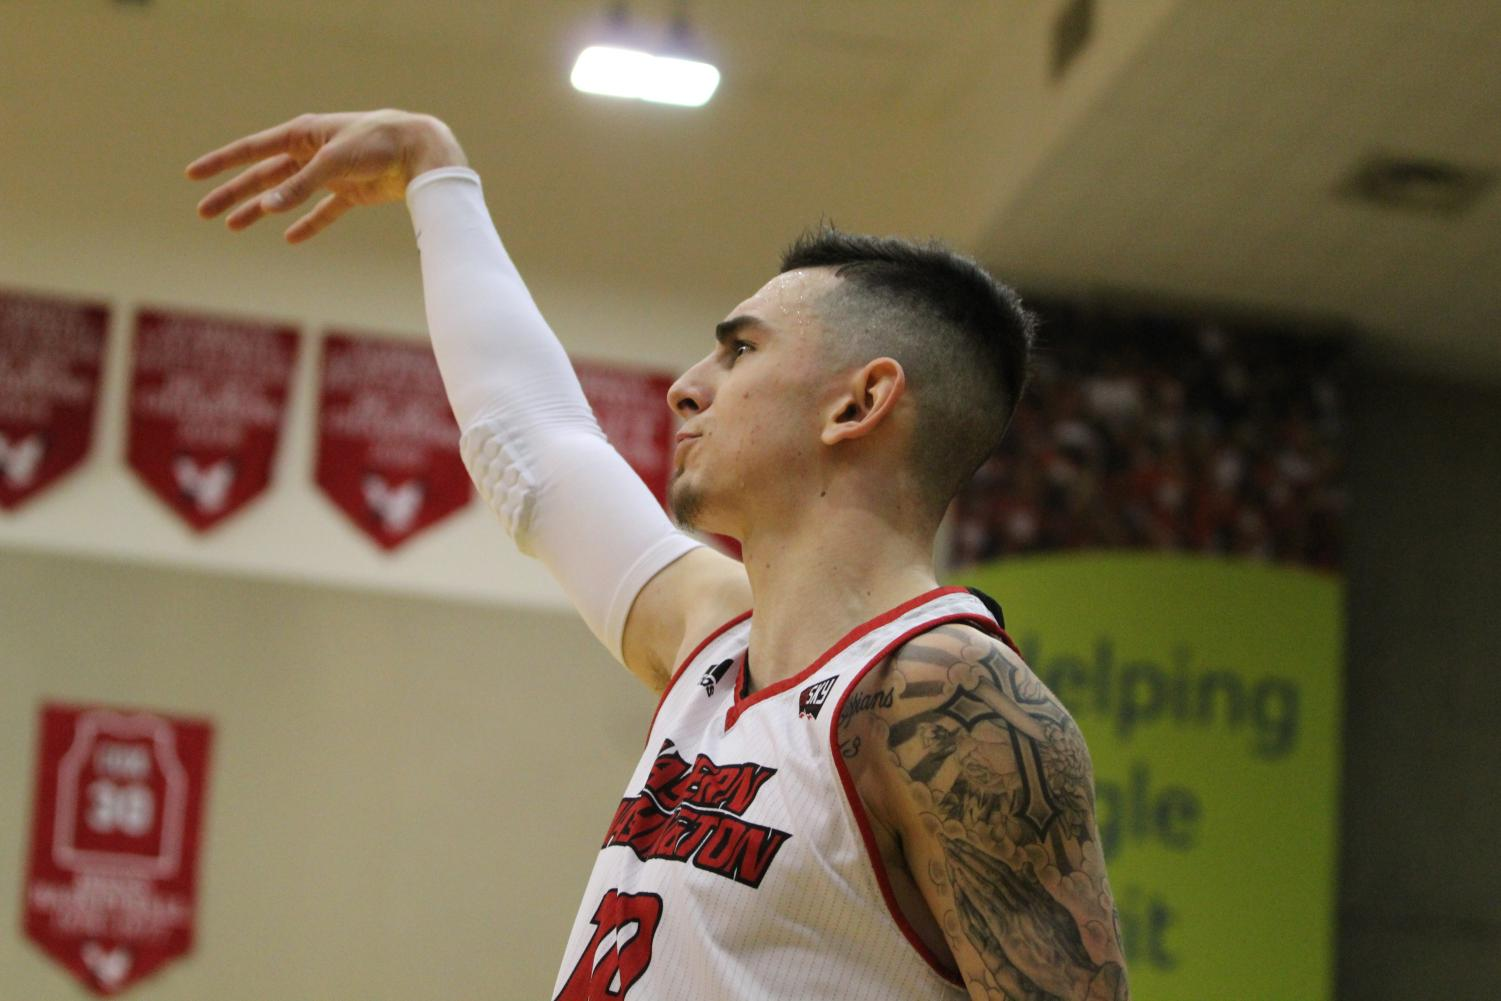 Sophomore guard Jacob Davison admires a shot in EWU's 88-78 win over Northern Colorado on Feb. 16. Davison suffered a high ankle sprain in the game against the Bears and is doubtful to return for the Big Sky Conference Tournament.